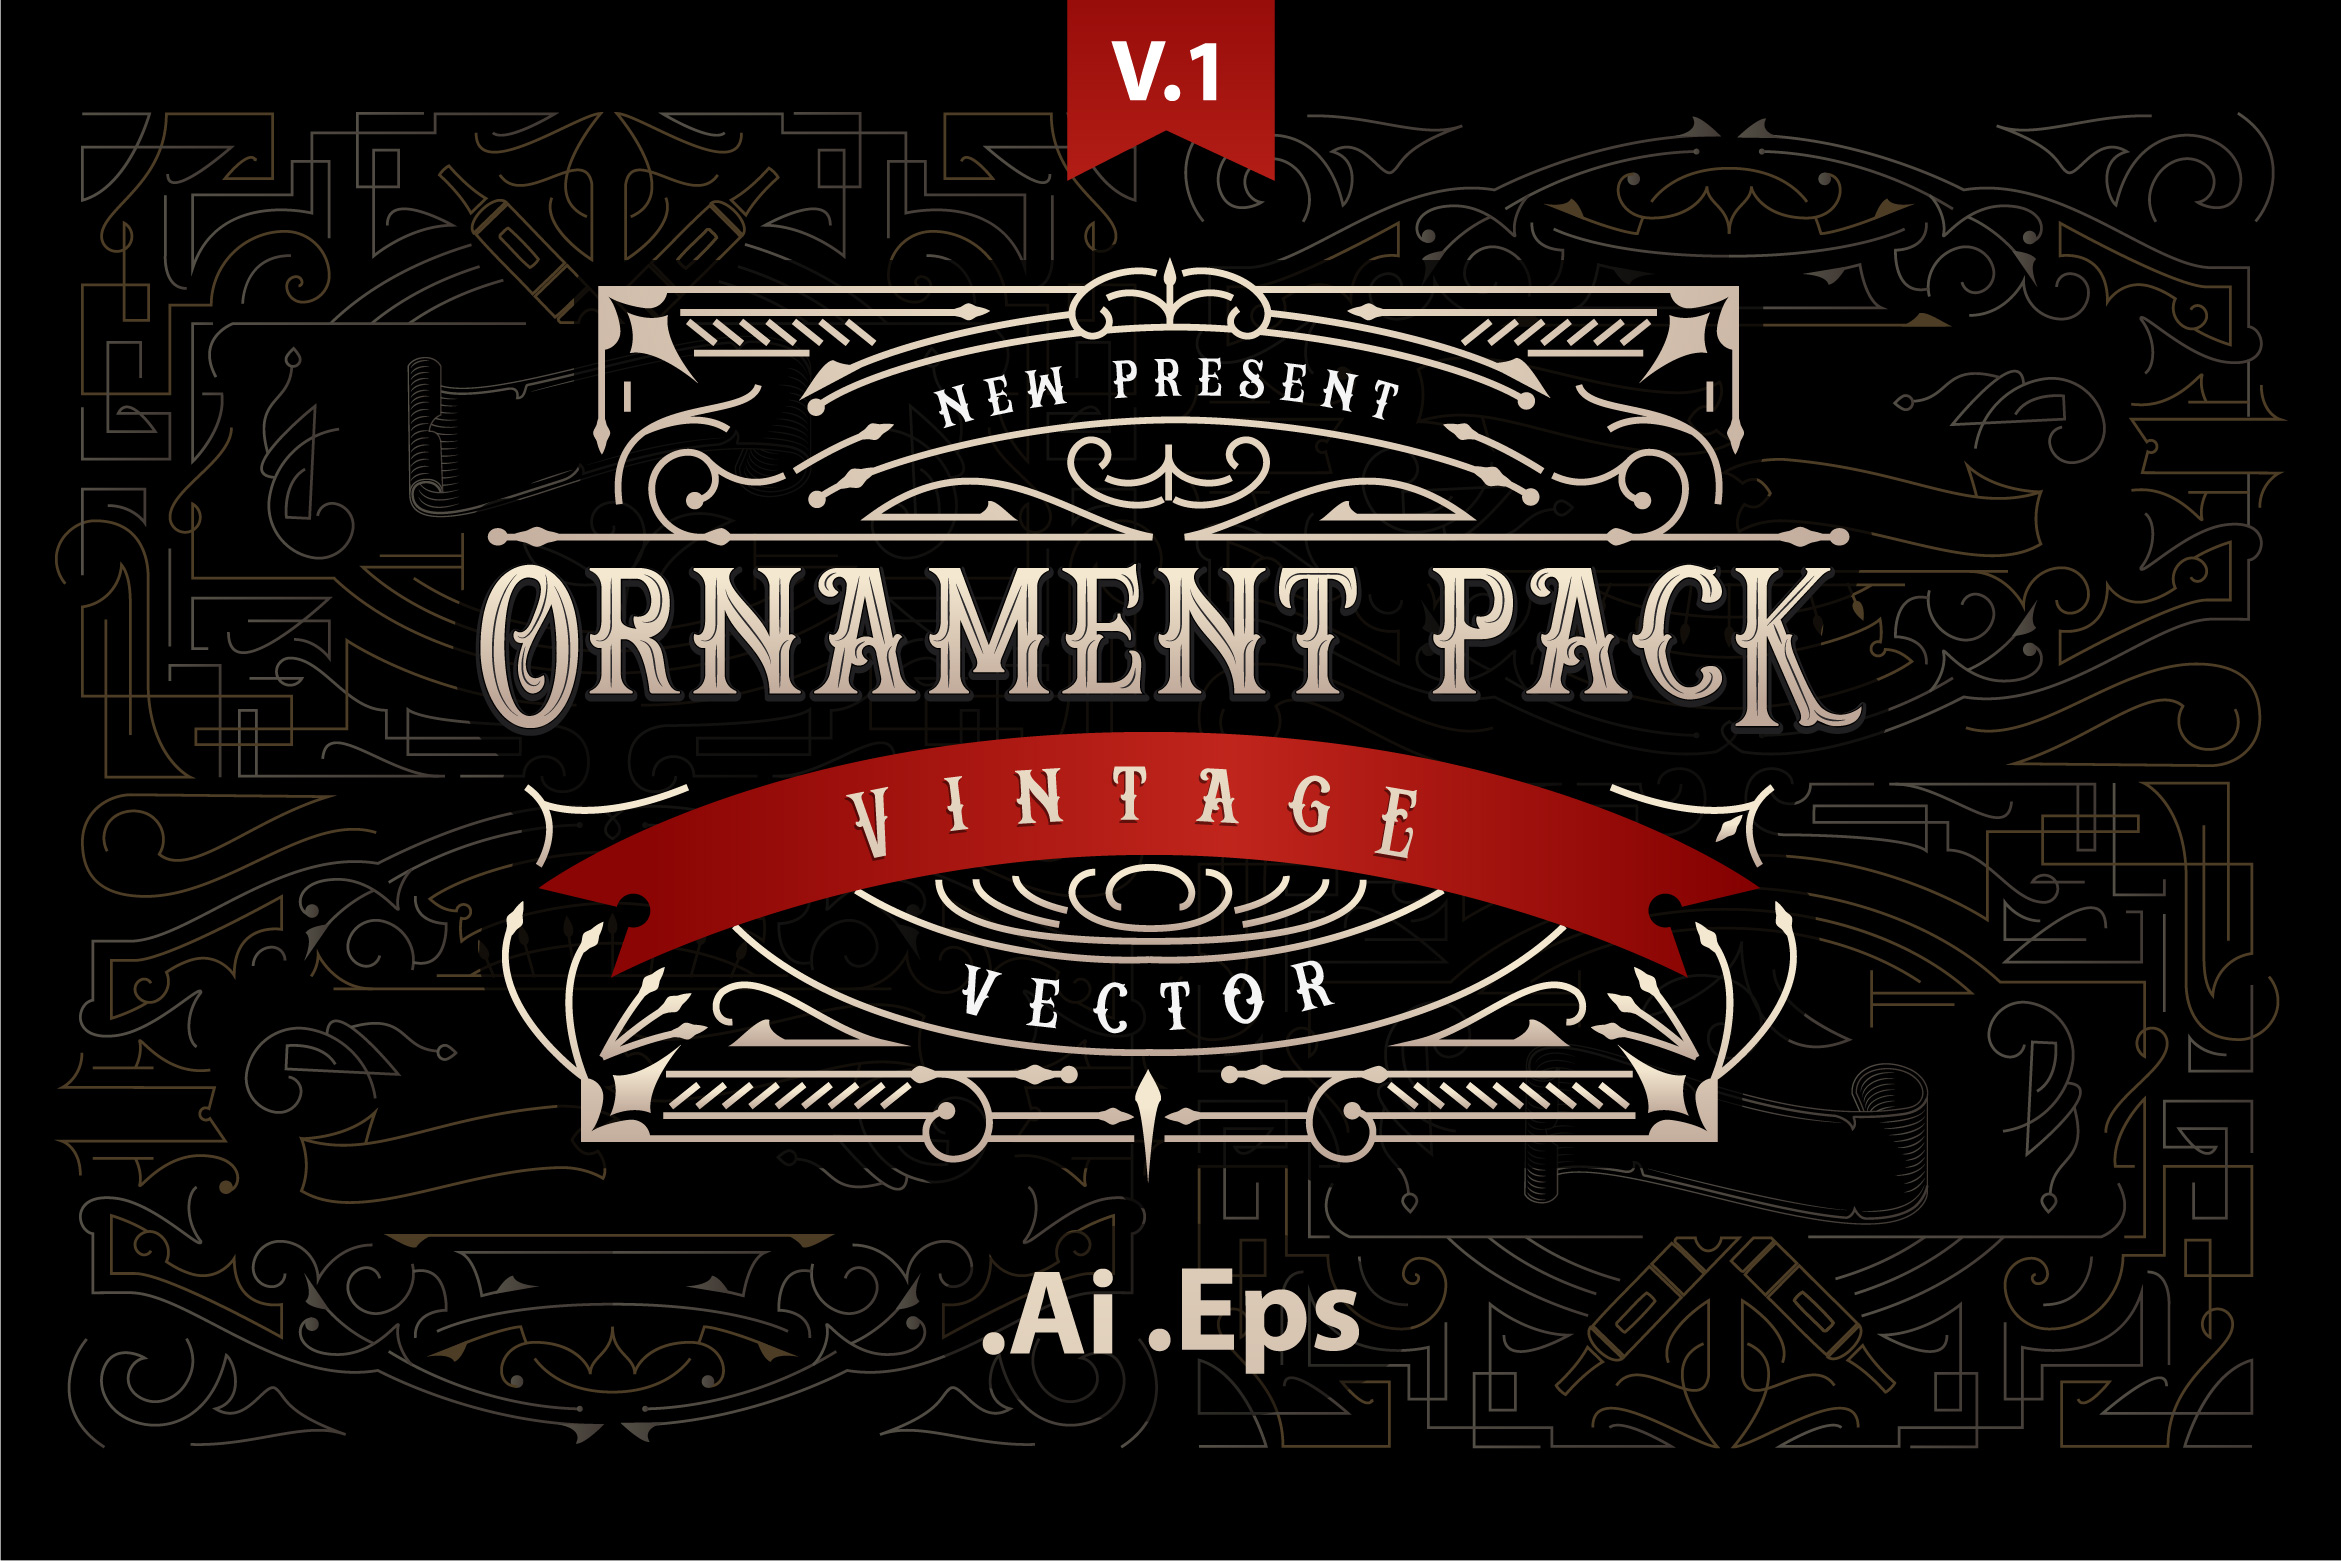 Ornament Pack Vintage 1 Graphic Objects By storictype